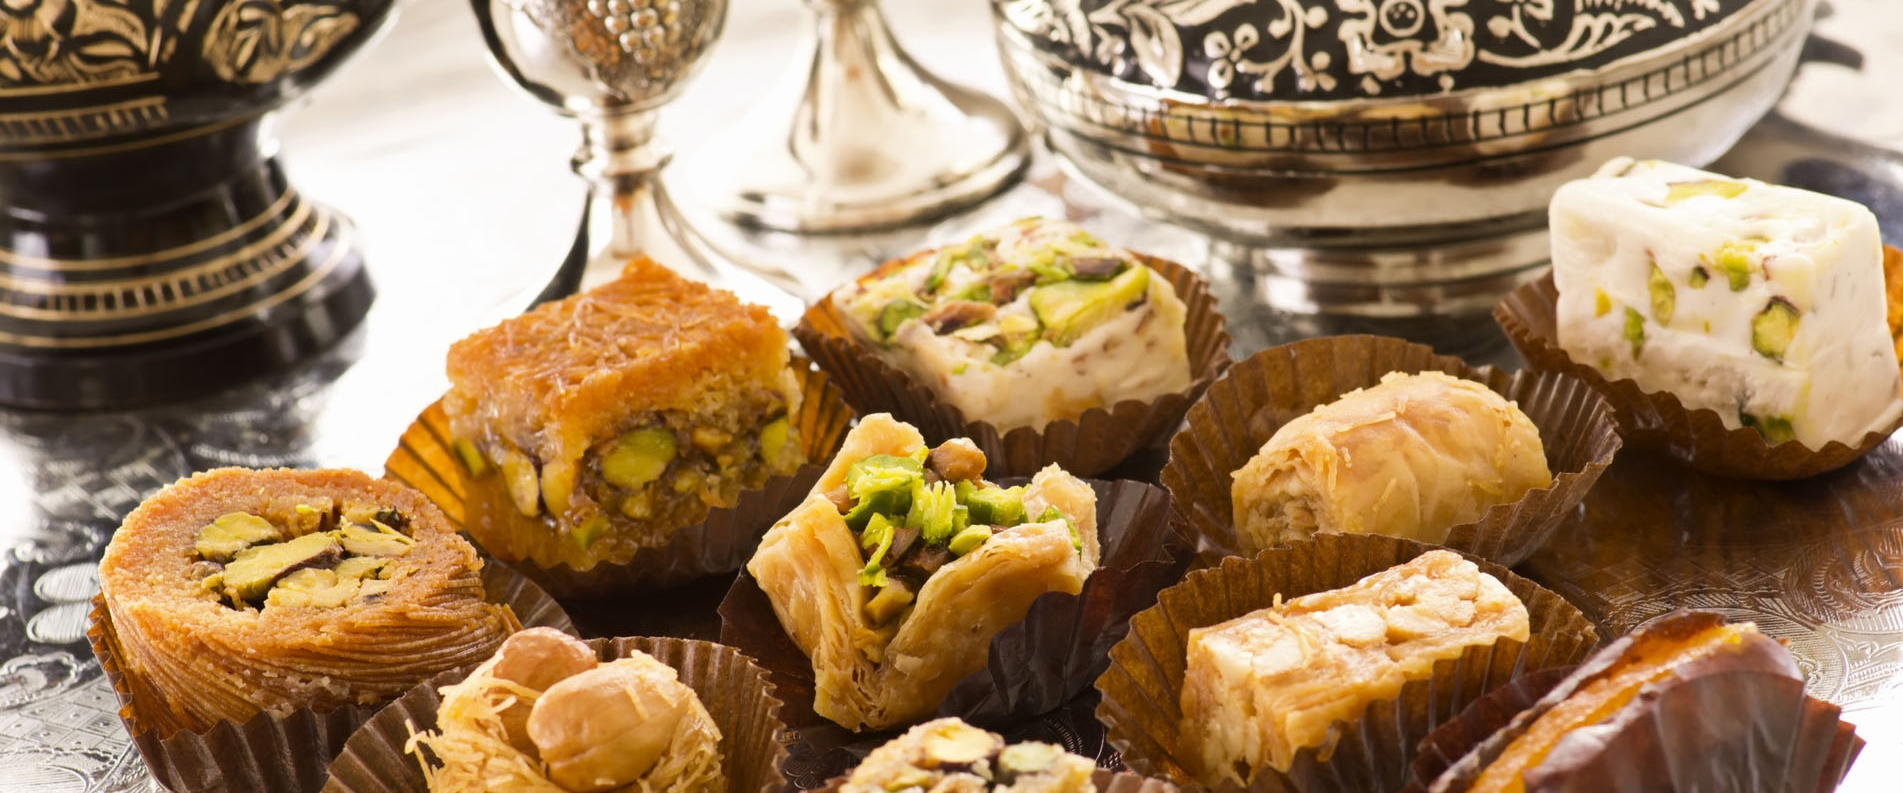 Traditional Cypriot sweets and desserts